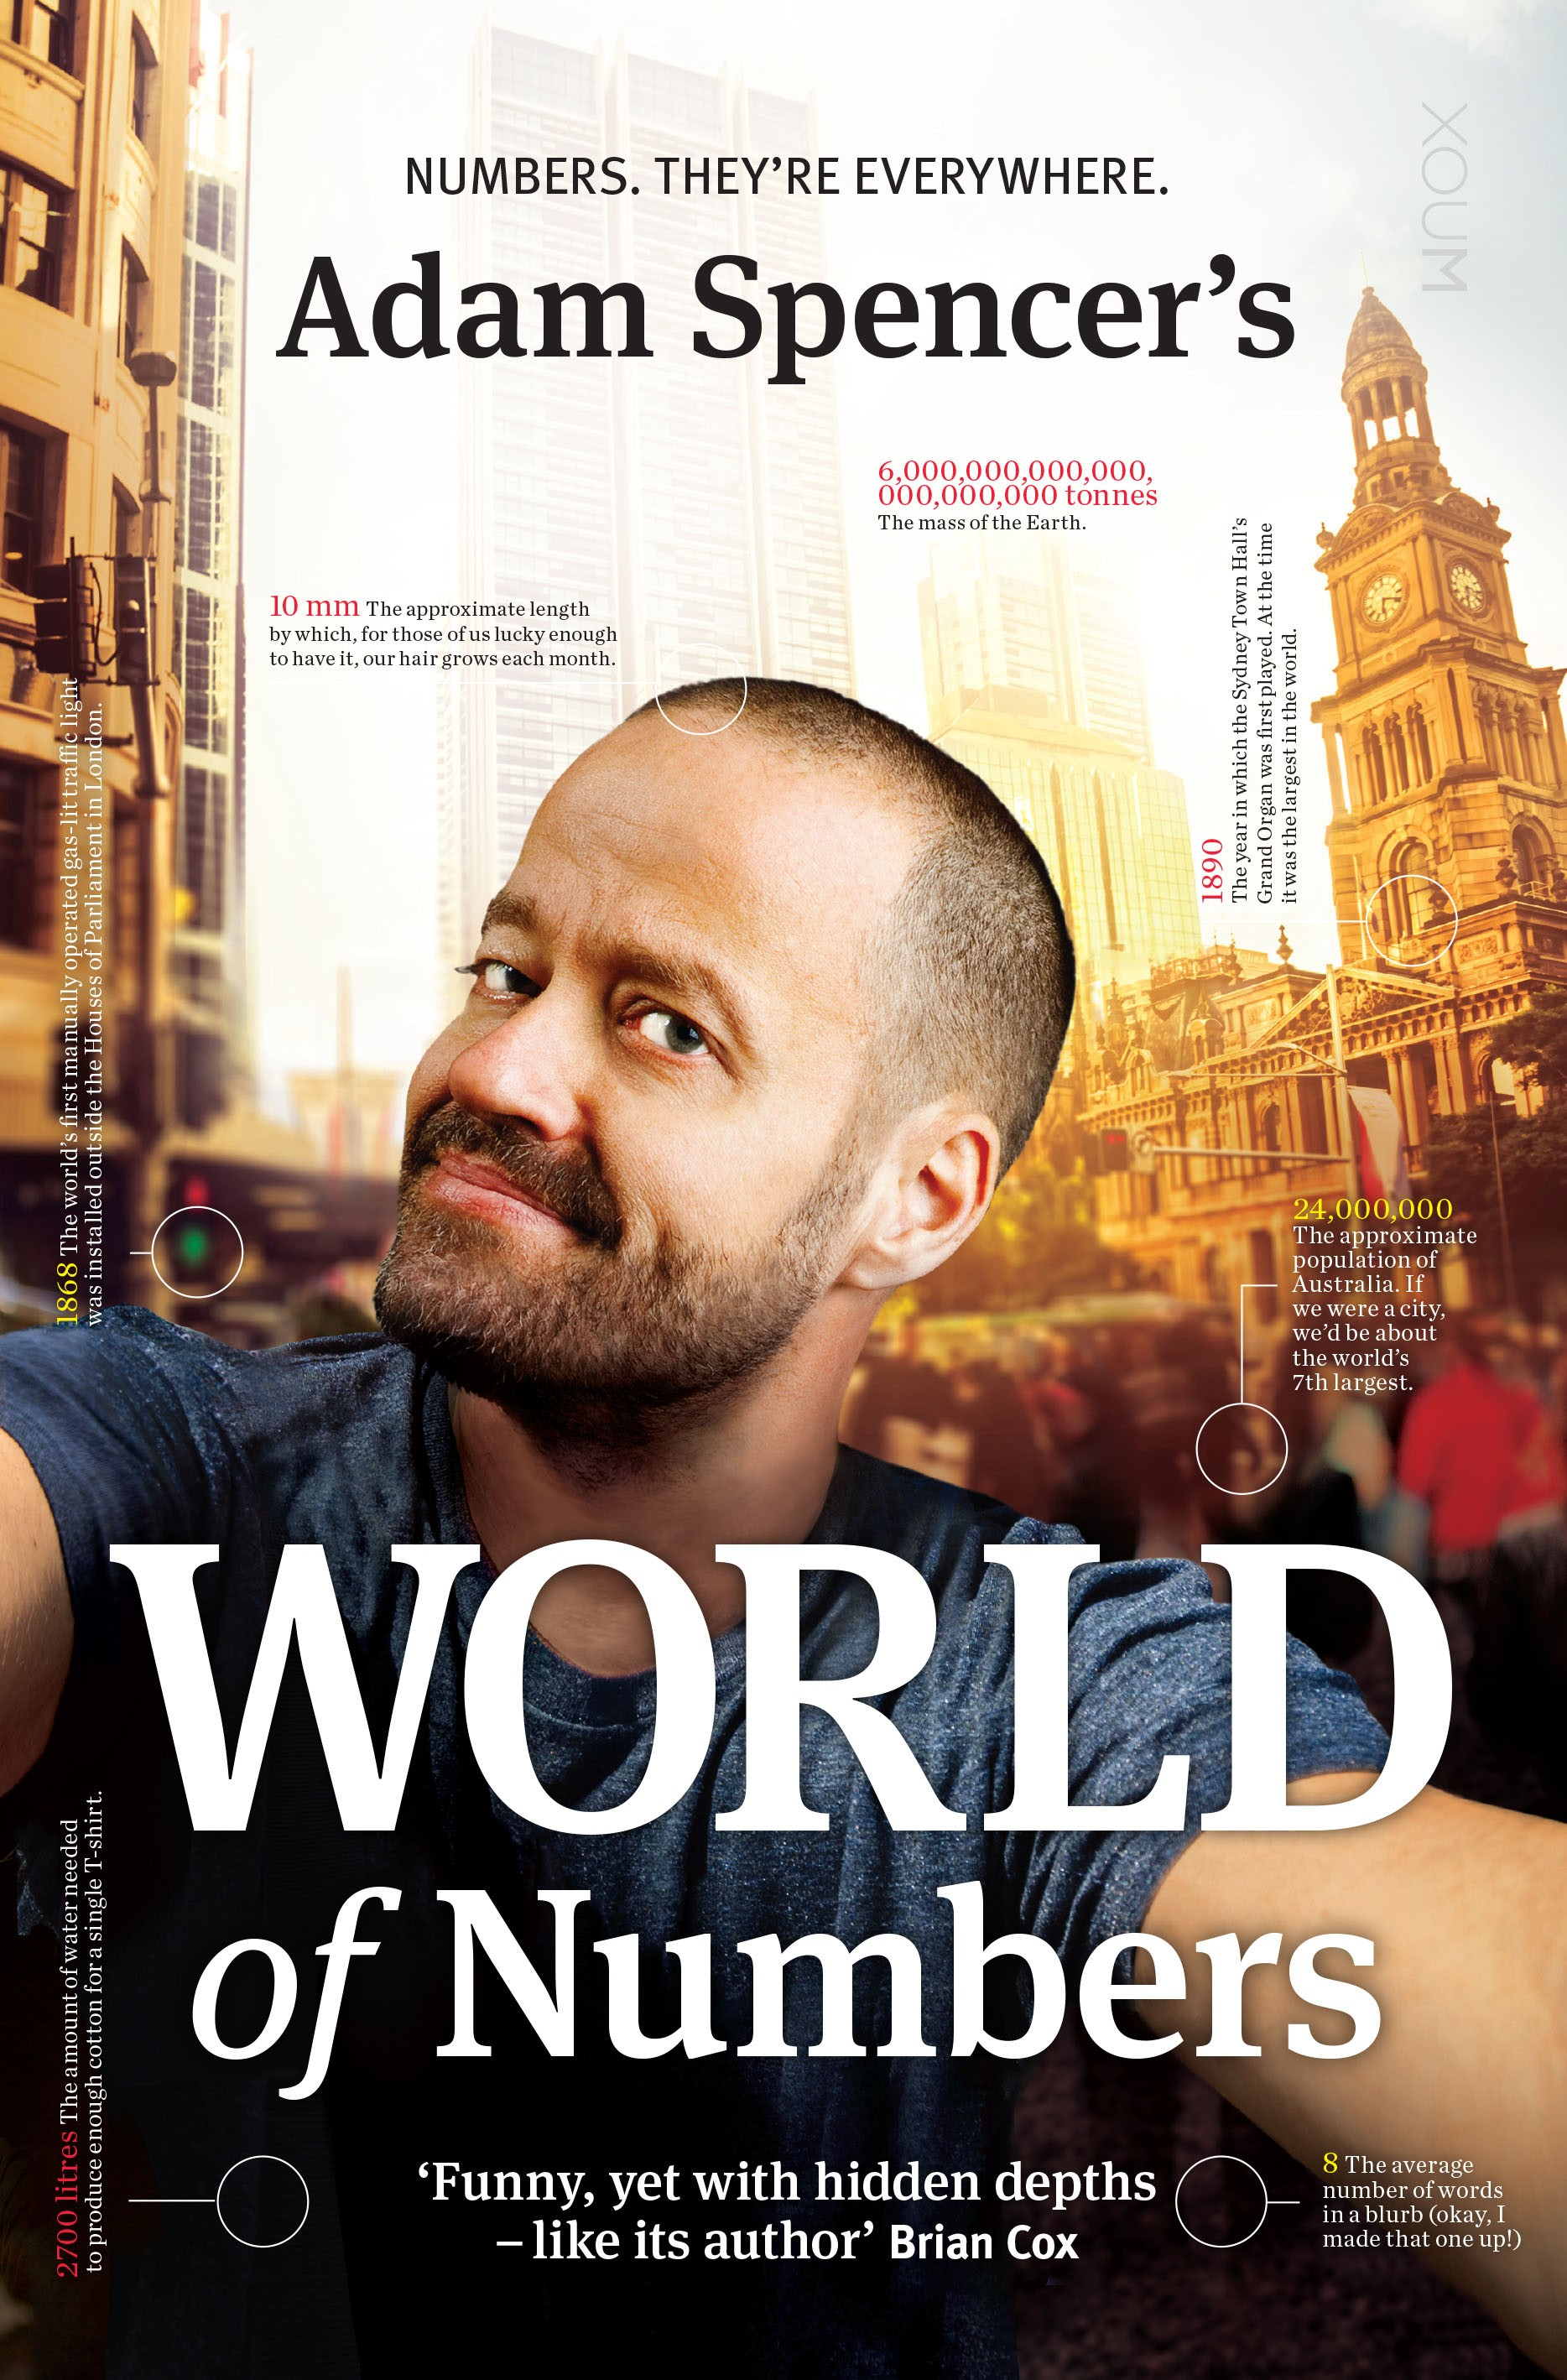 Adam Spencer's World of Numbers by Adam Spencer, ISBN: 9781921134869